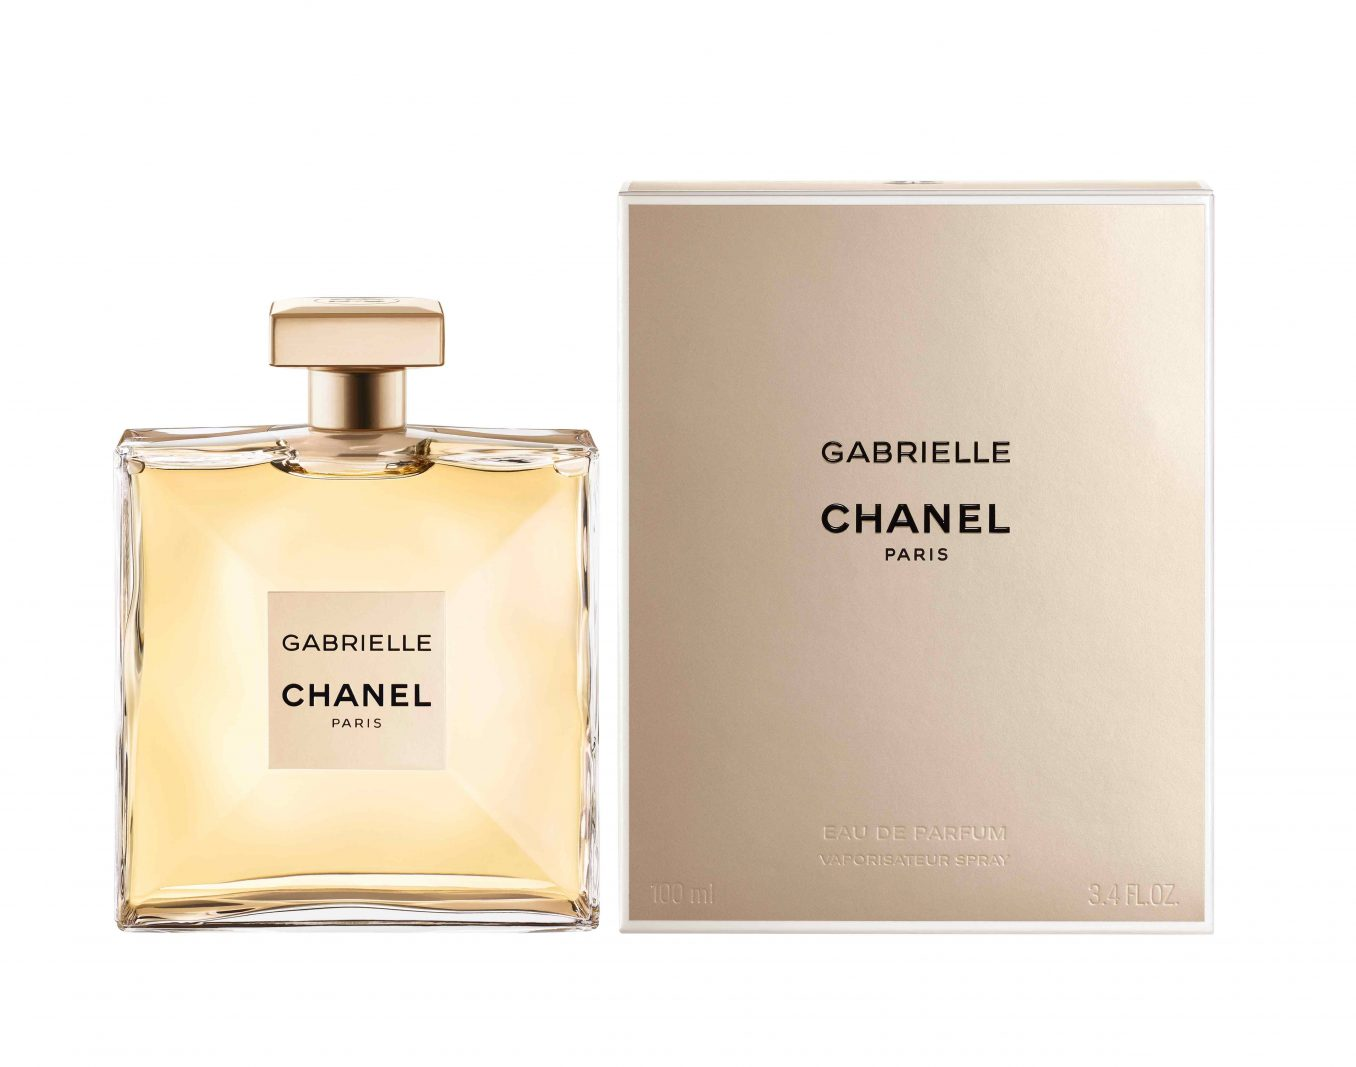 Scent Chanel Woman Gabrielle Perfume Packaging